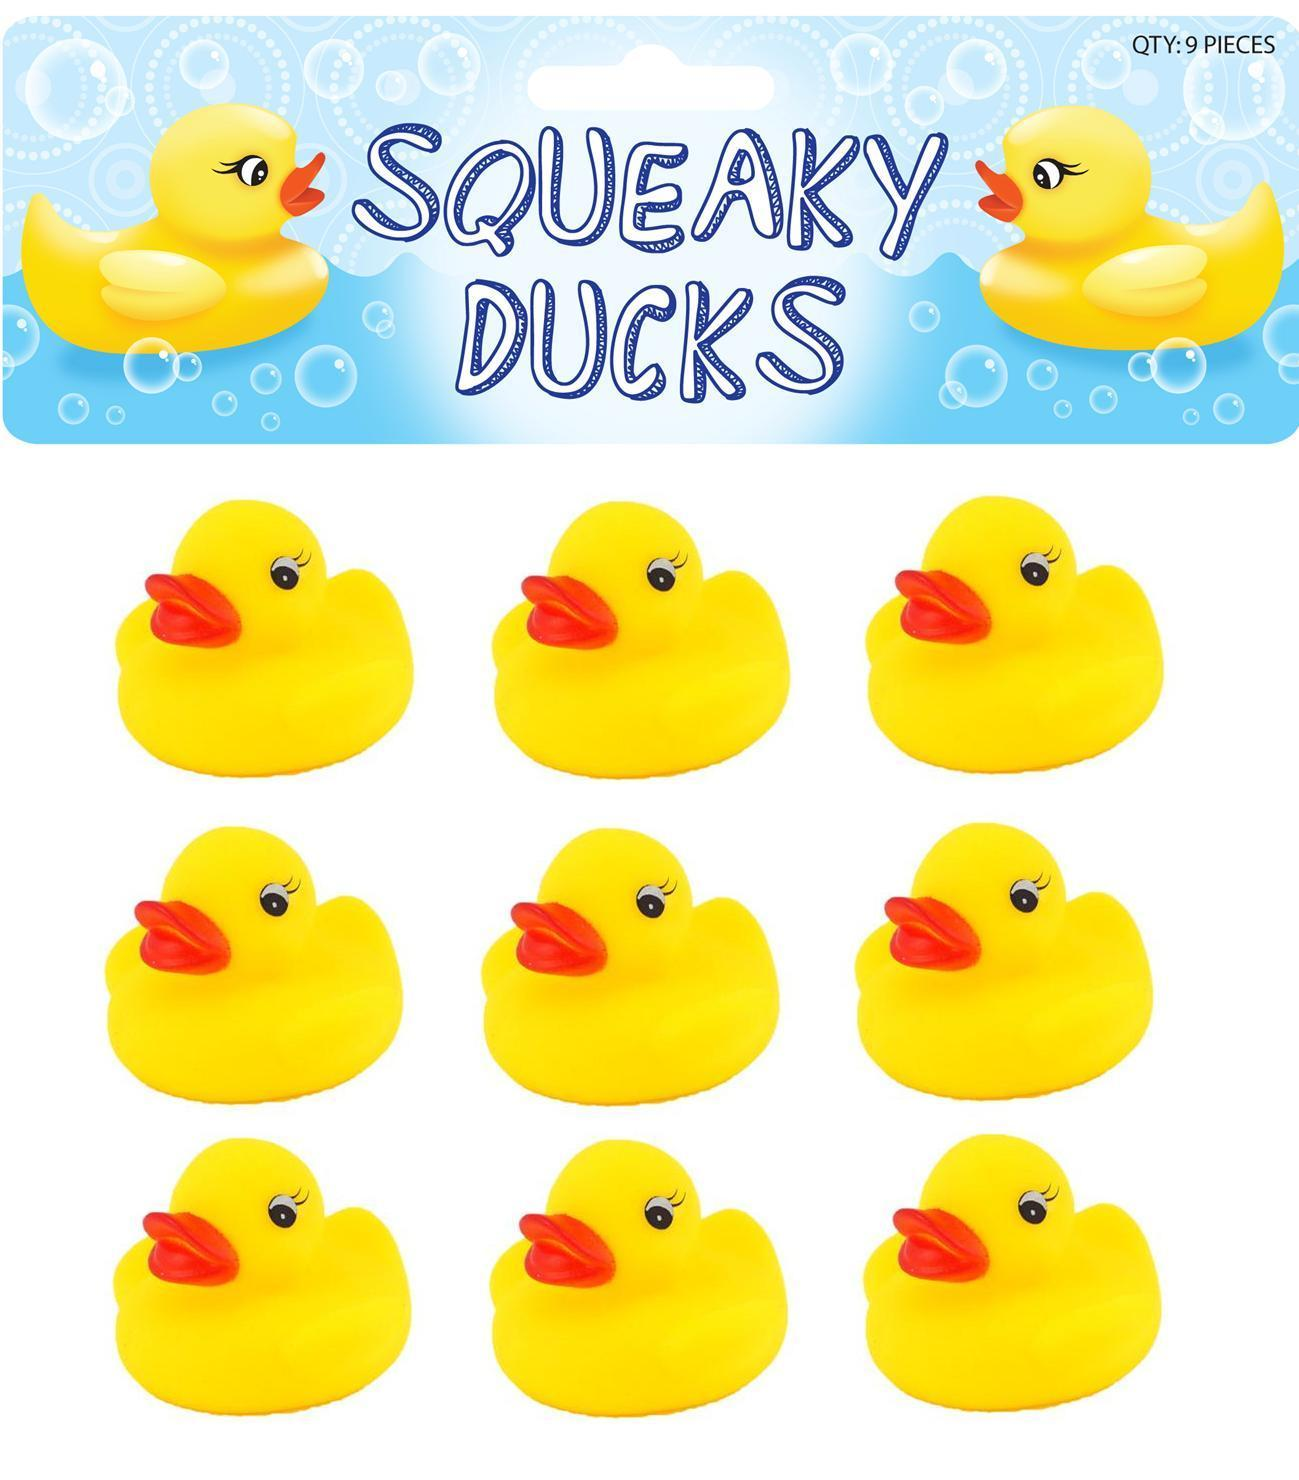 Pack of 6 Hero Rubber Ducks for Children to Play With Perfect Party Bag Filler /& Fun Bathtime Toy for Kids